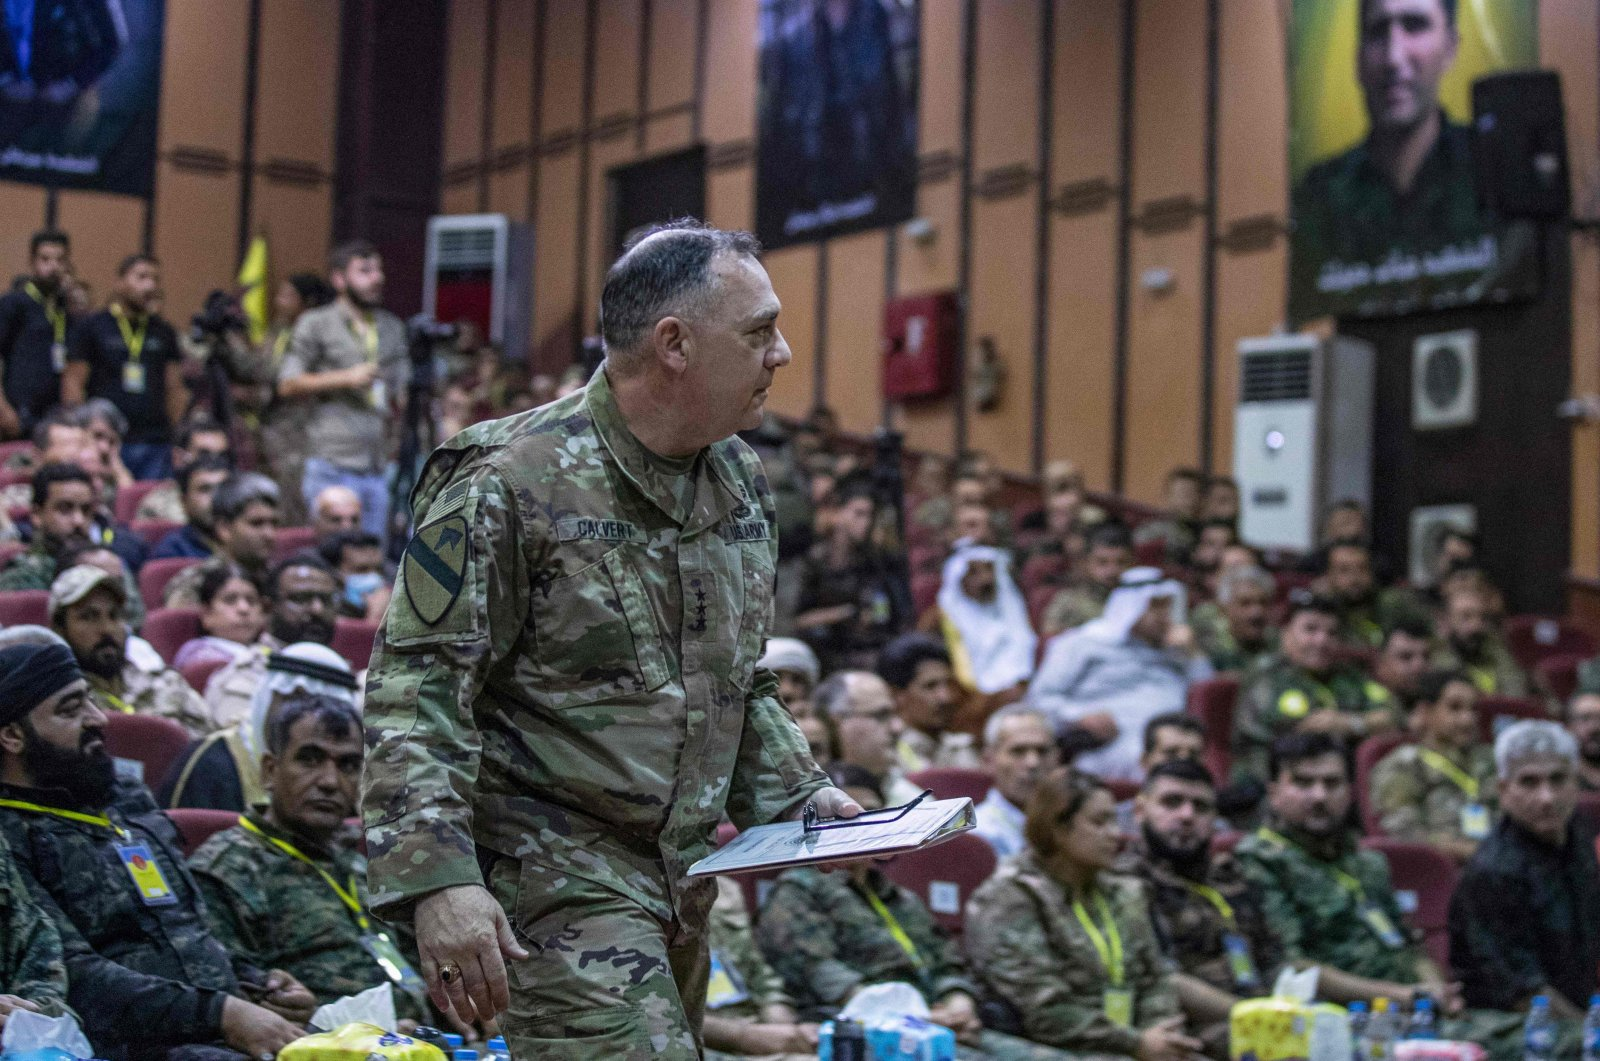 U.S. Commander of the Combined Joint Task Force Paul T. Calvert attends the terrorist SDF's annual meeting in Syria's northeastern city of Hassakeh, Aug. 1, 2021. (AFP Photo)